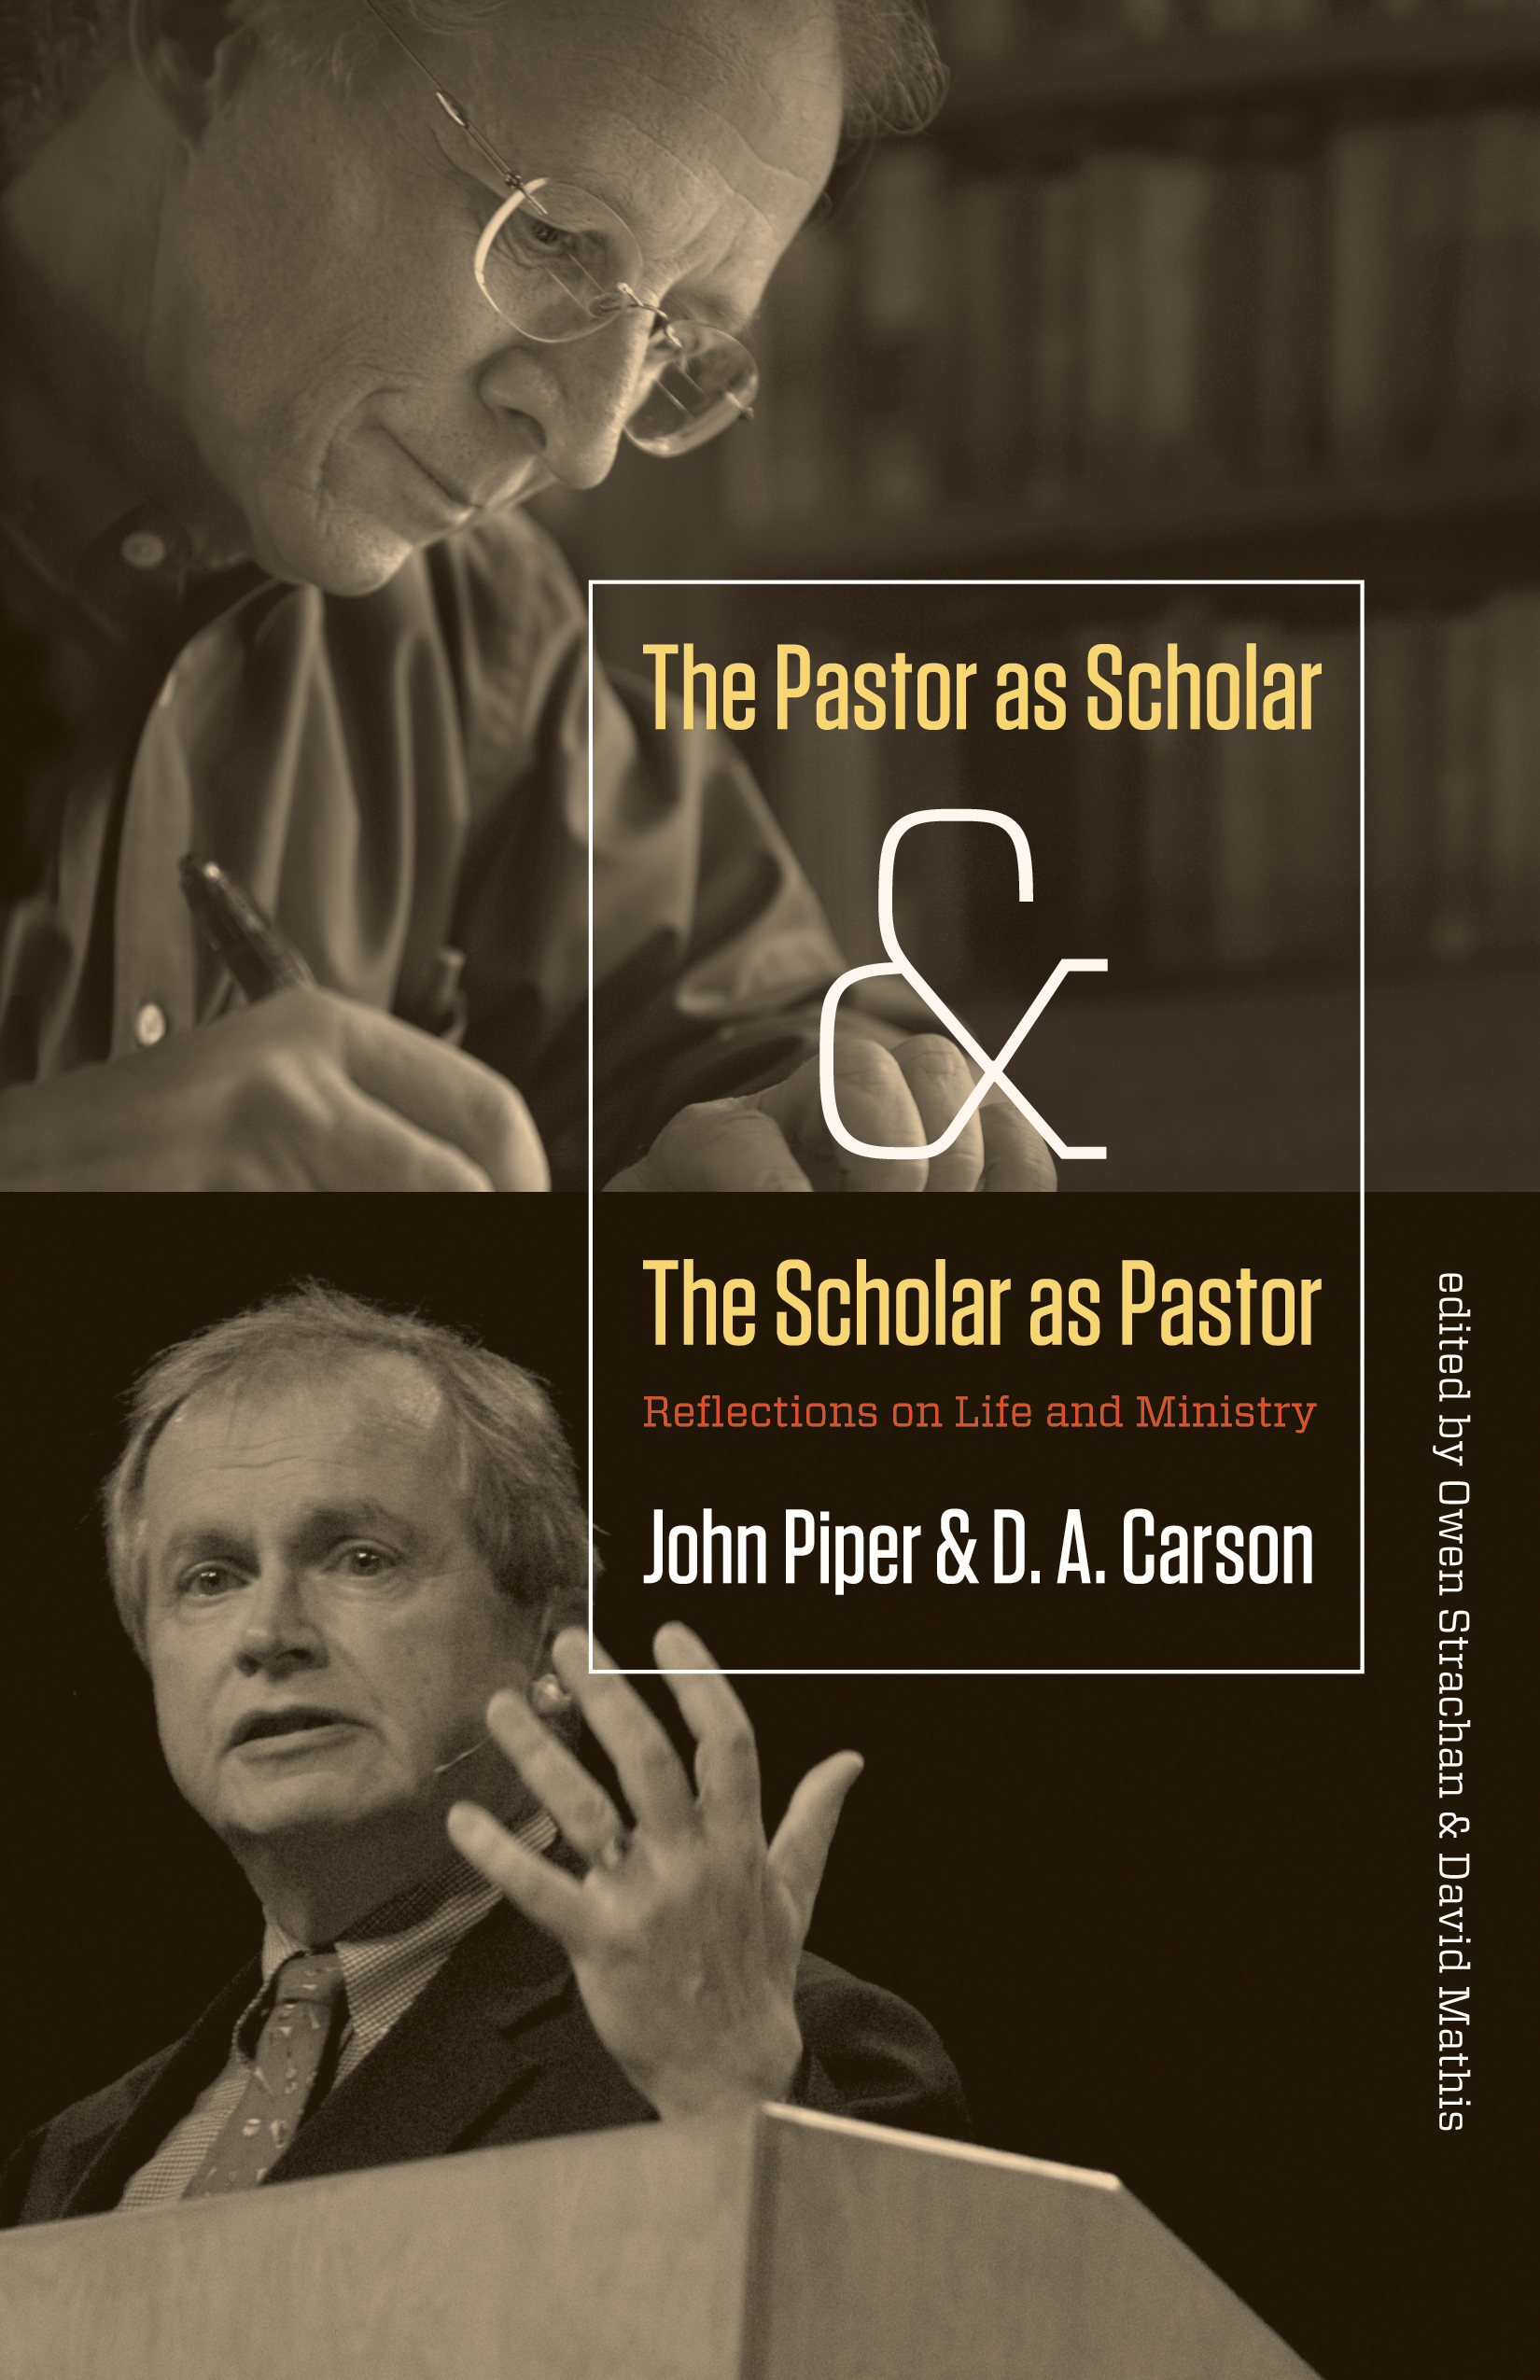 The Pastor as Scholar and the Scholar as Pastor Reflections on Life and Ministry